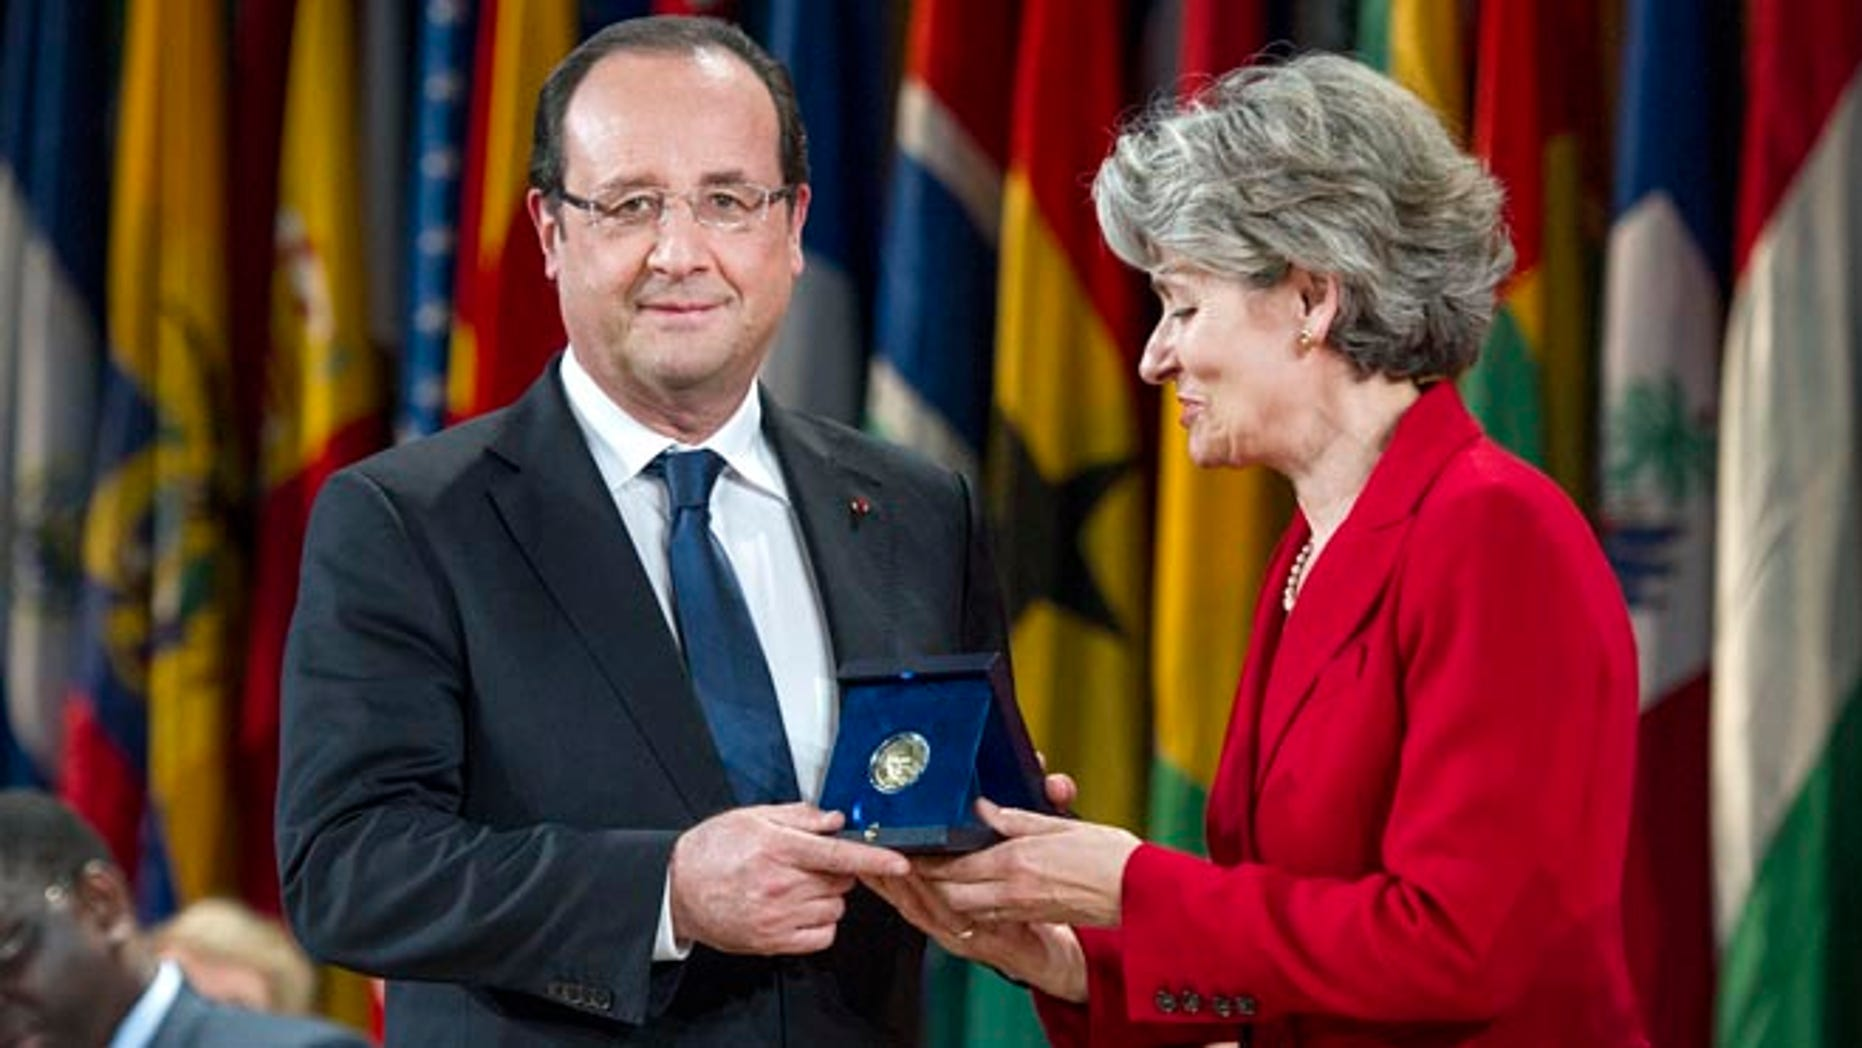 June 5, 2013: French President Francois Hollande receives the Felix Houphouet-Boigny Peace Prize from Director-General of UNESCO Irina Bokova, right,  at the UNESCO headquarters in Paris, France.